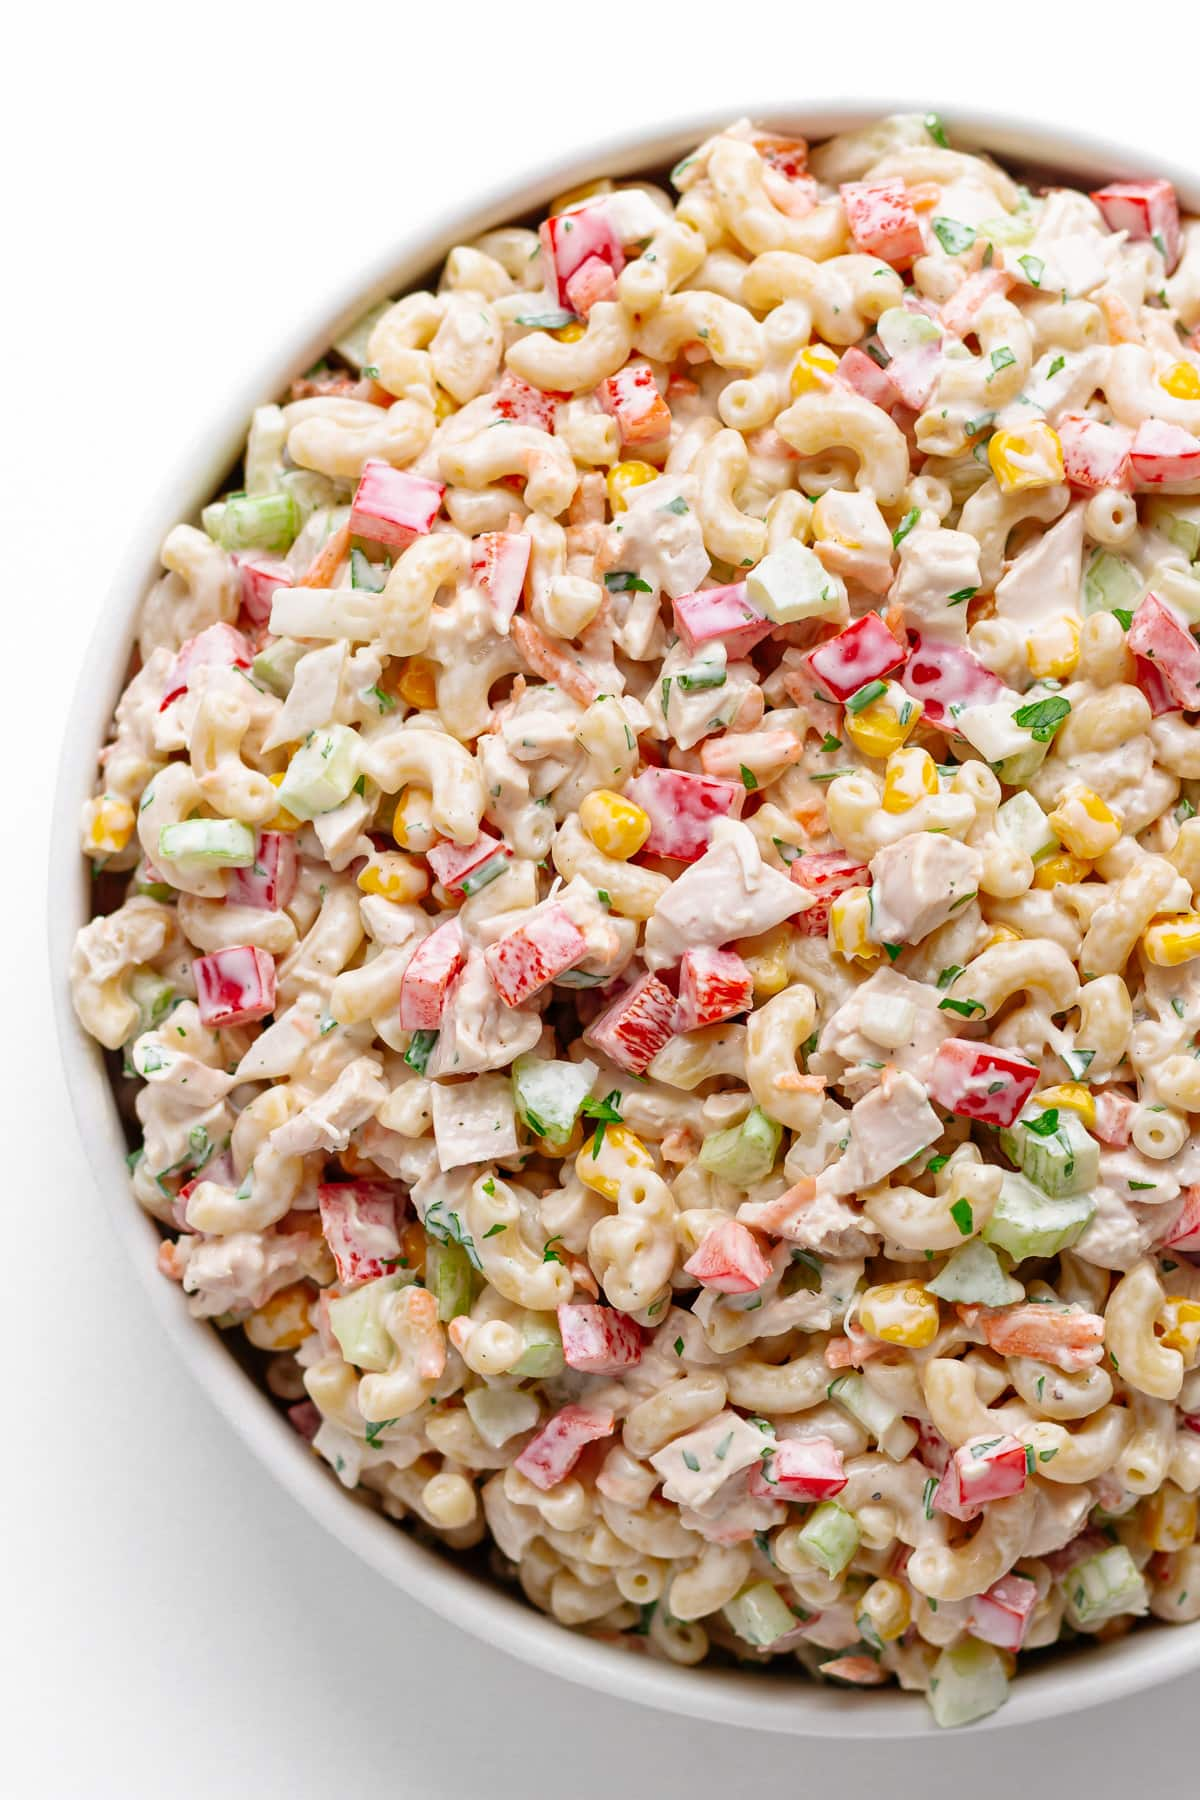 Chicken macaroni salad in a large shallow white serving bowl.